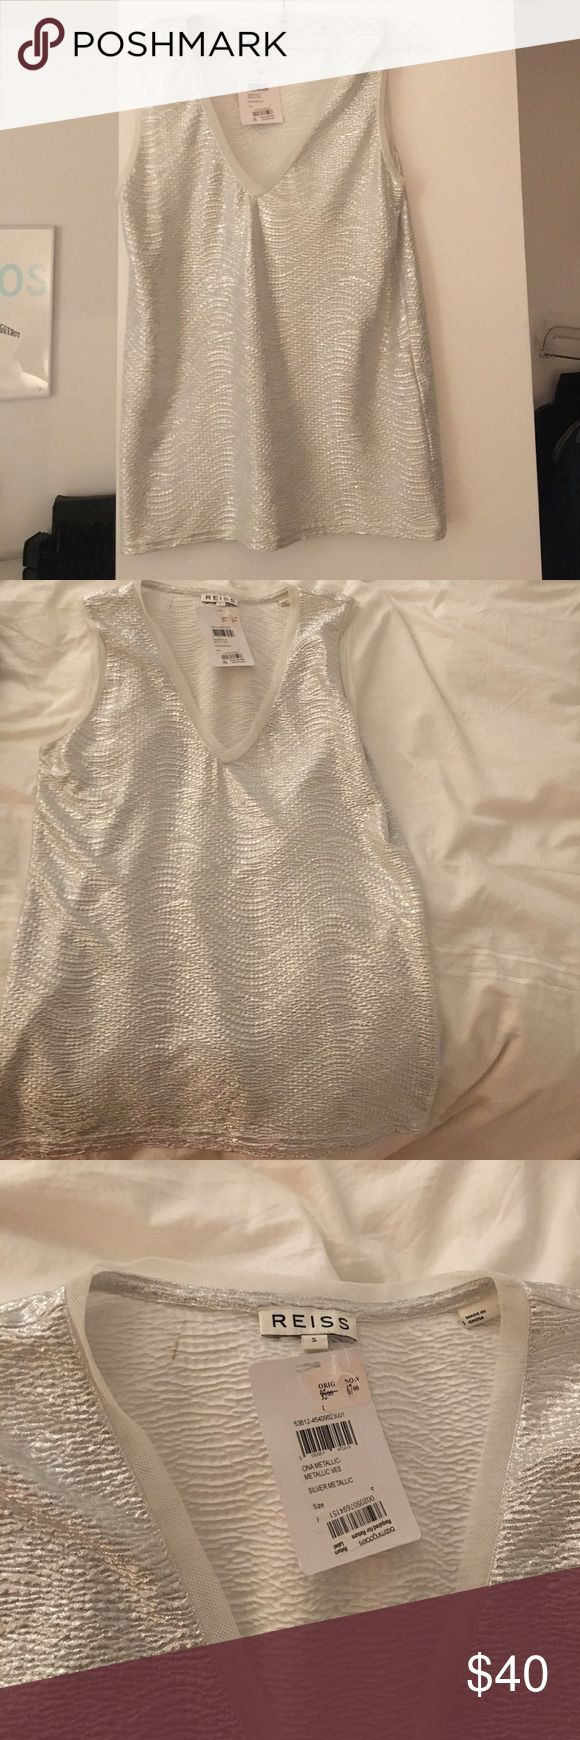 Shimmery REISS top Soft material never worn with tags Reiss Tops Tunics